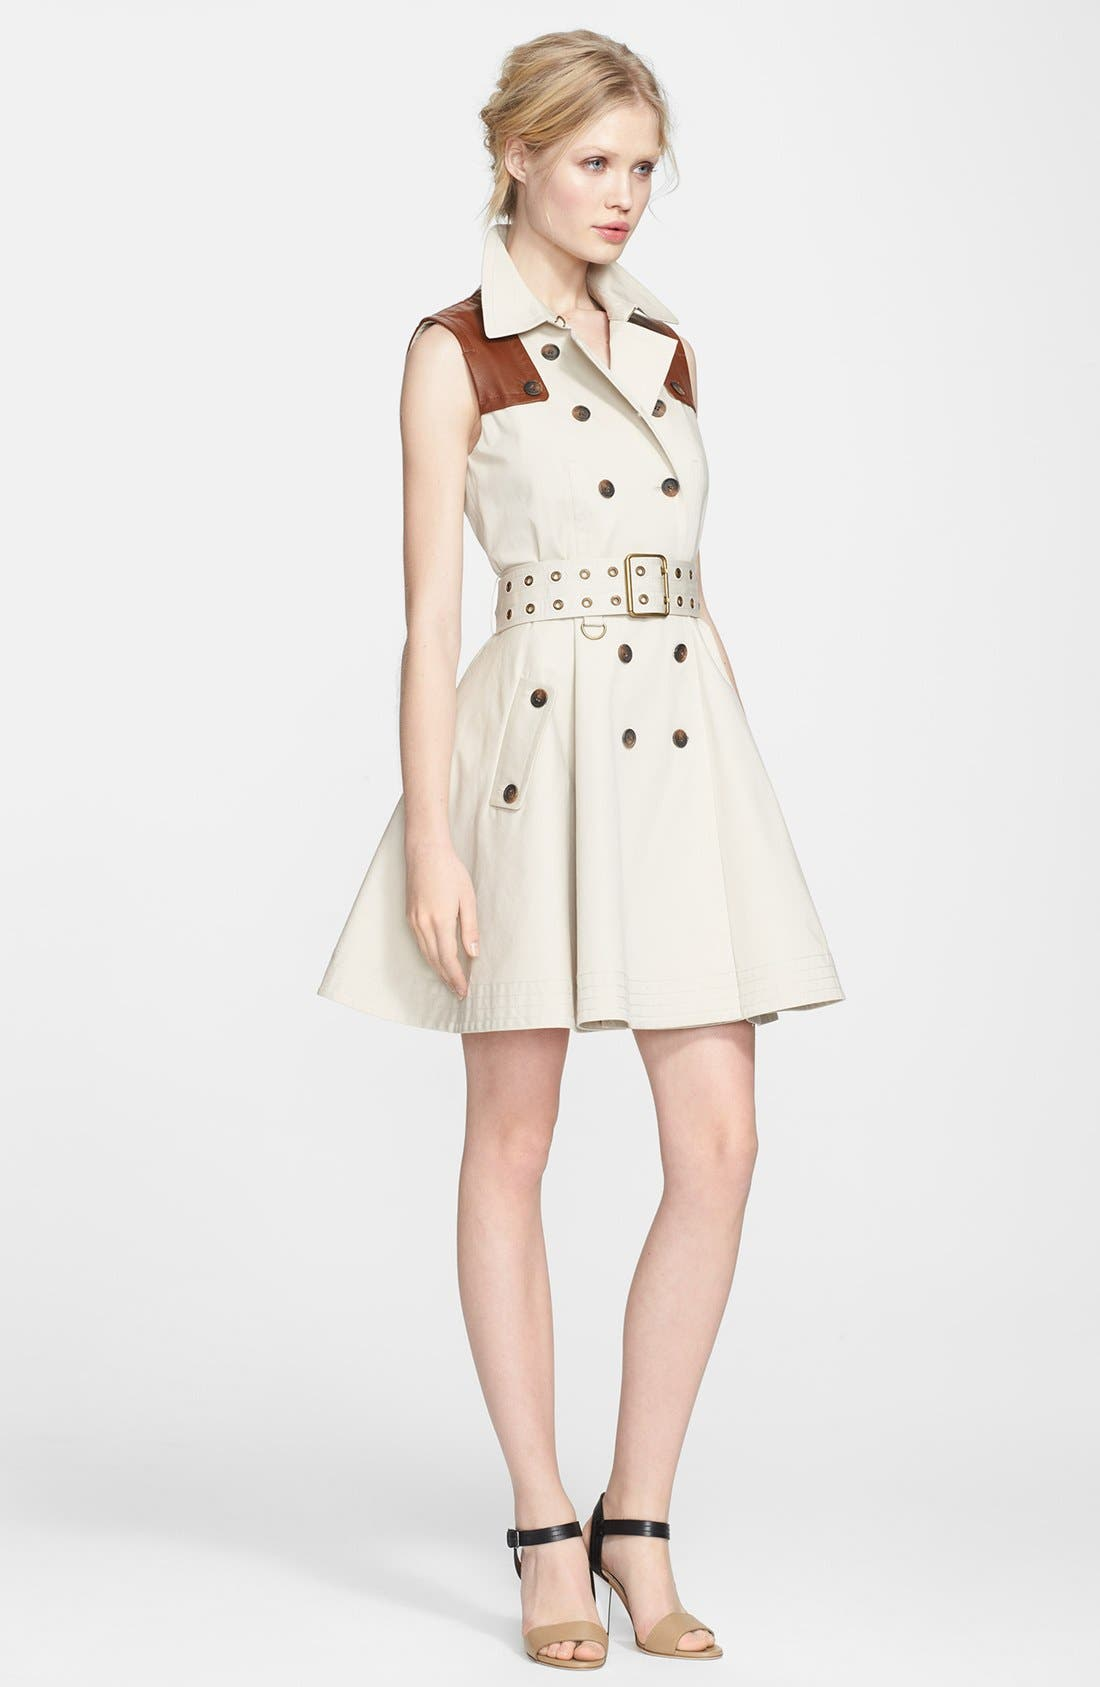 Alternate Image 1 Selected - Rachel Zoe Trench Dress & Accessories